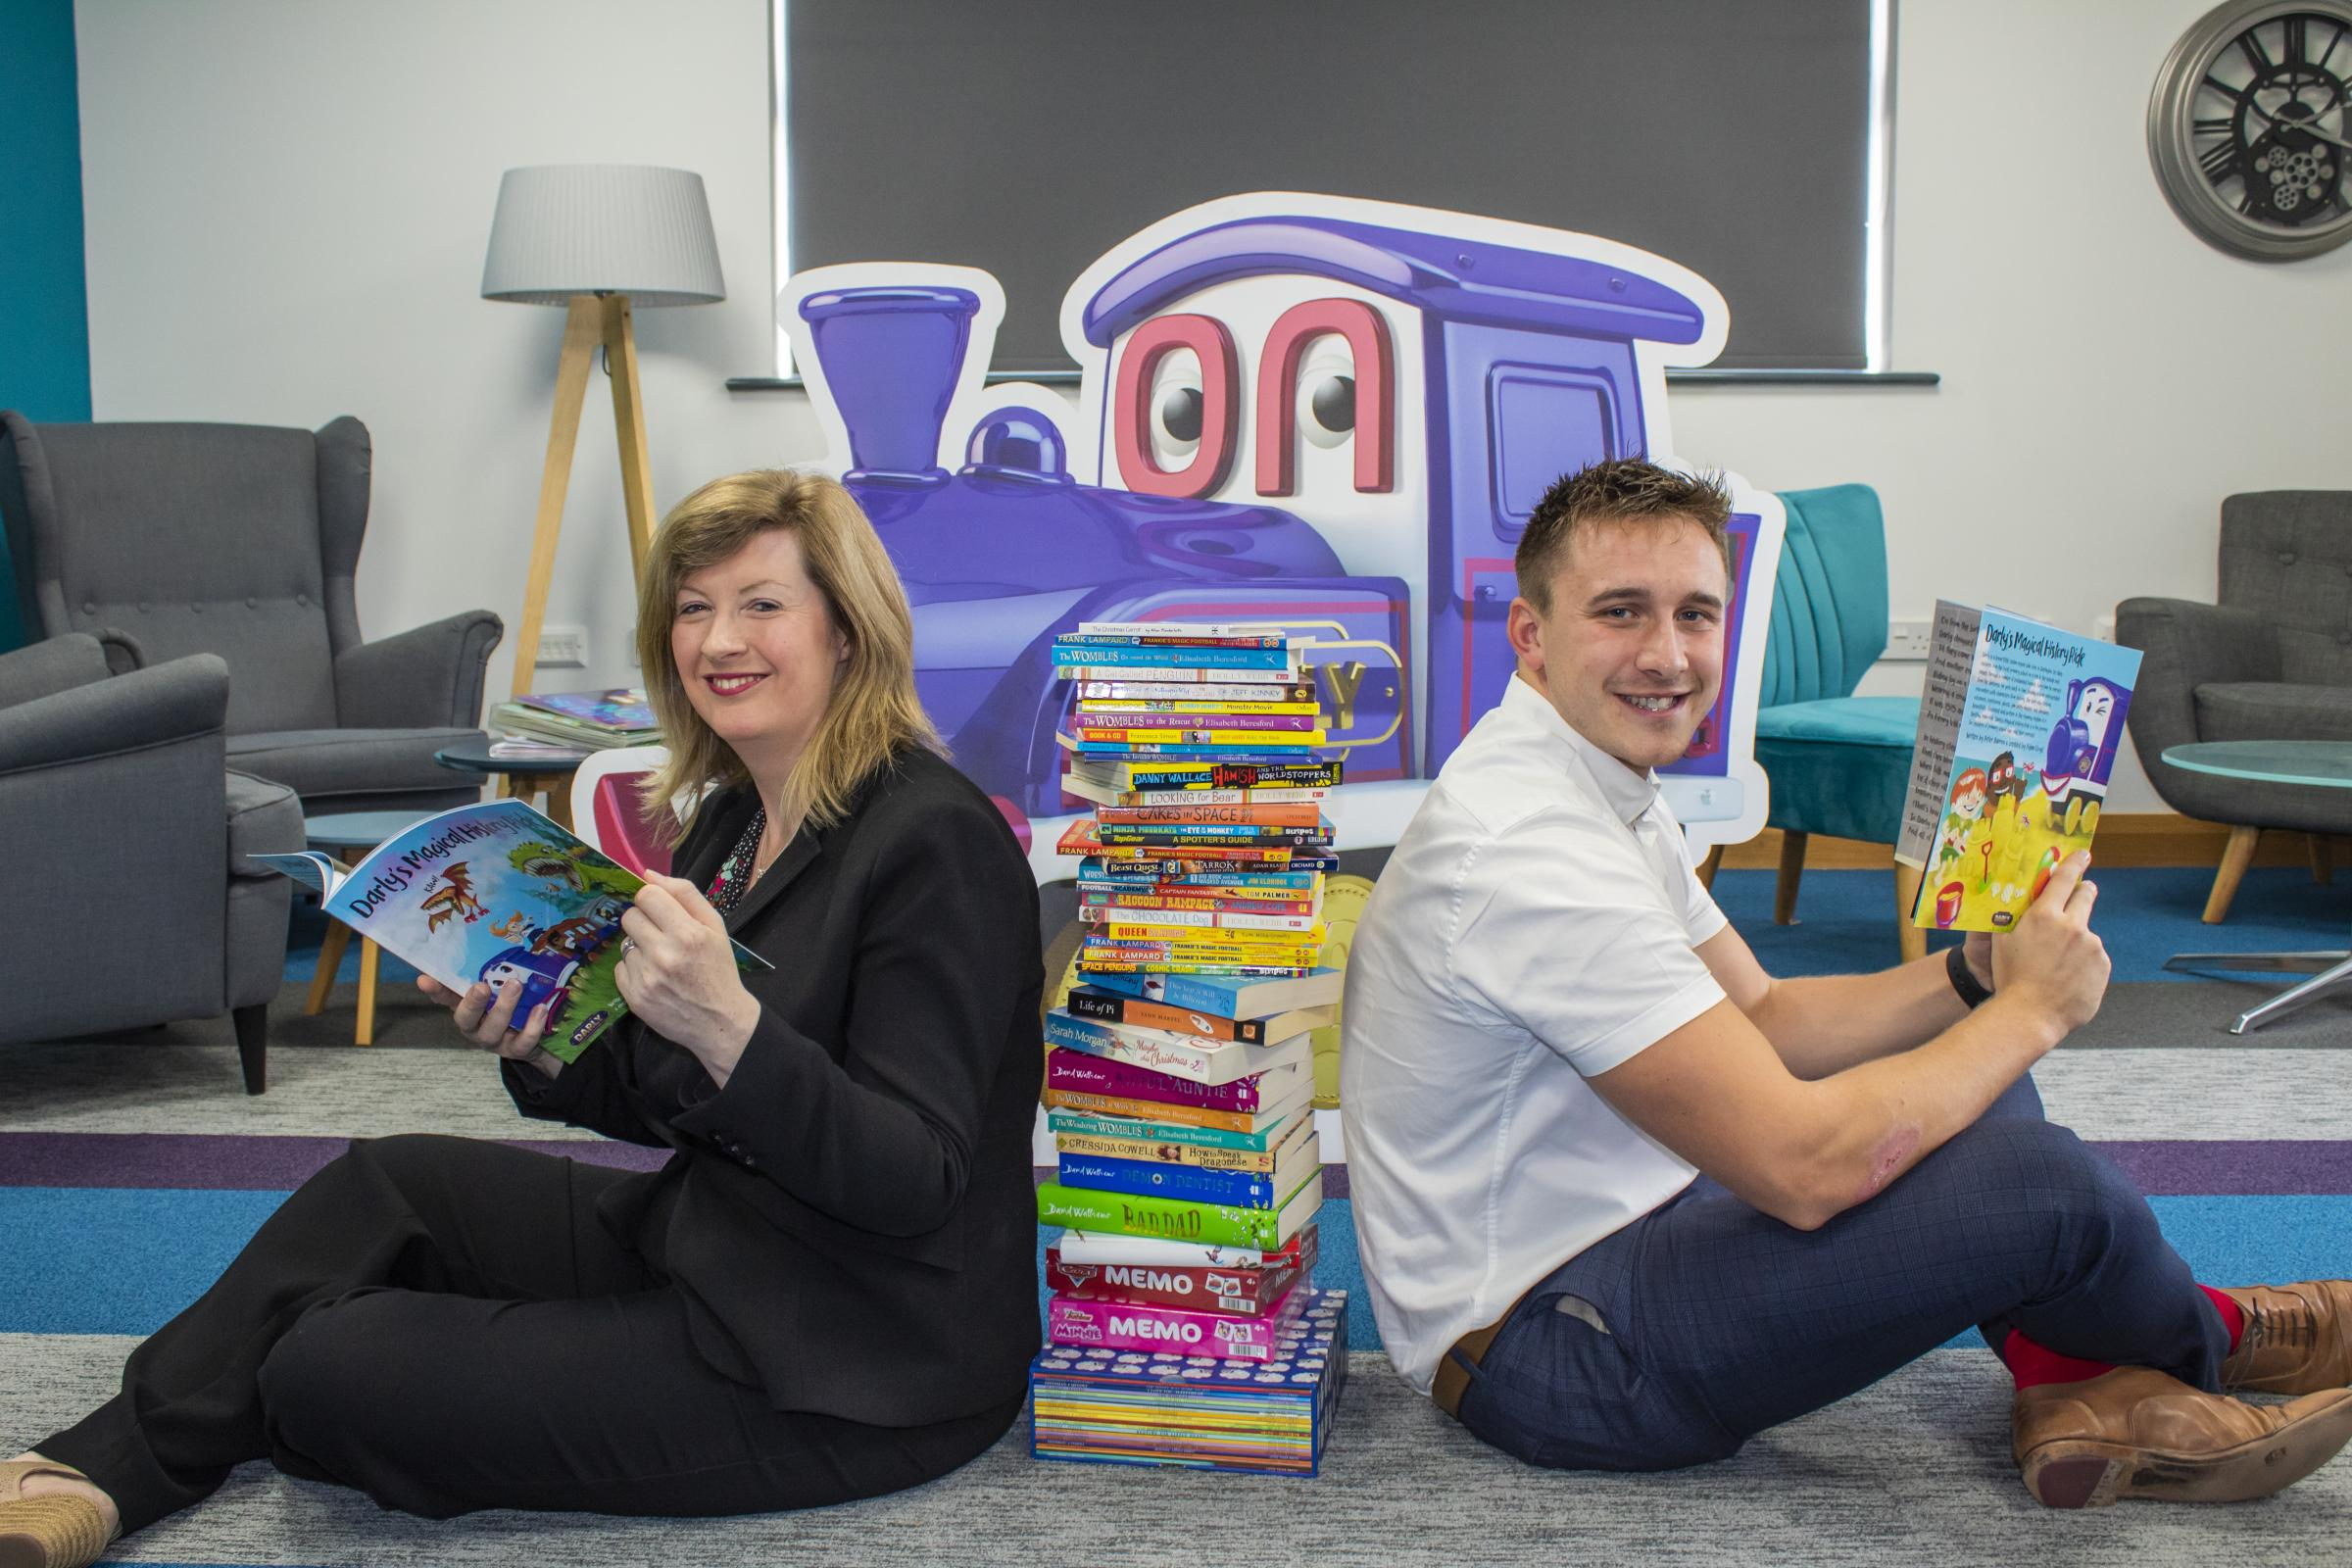 Caroline Darnbrook, left, Darlington Building Society's Director of Products and Marketing, and Josh Palin, Brand and Customer Insight Officer, launch the story-writing competition